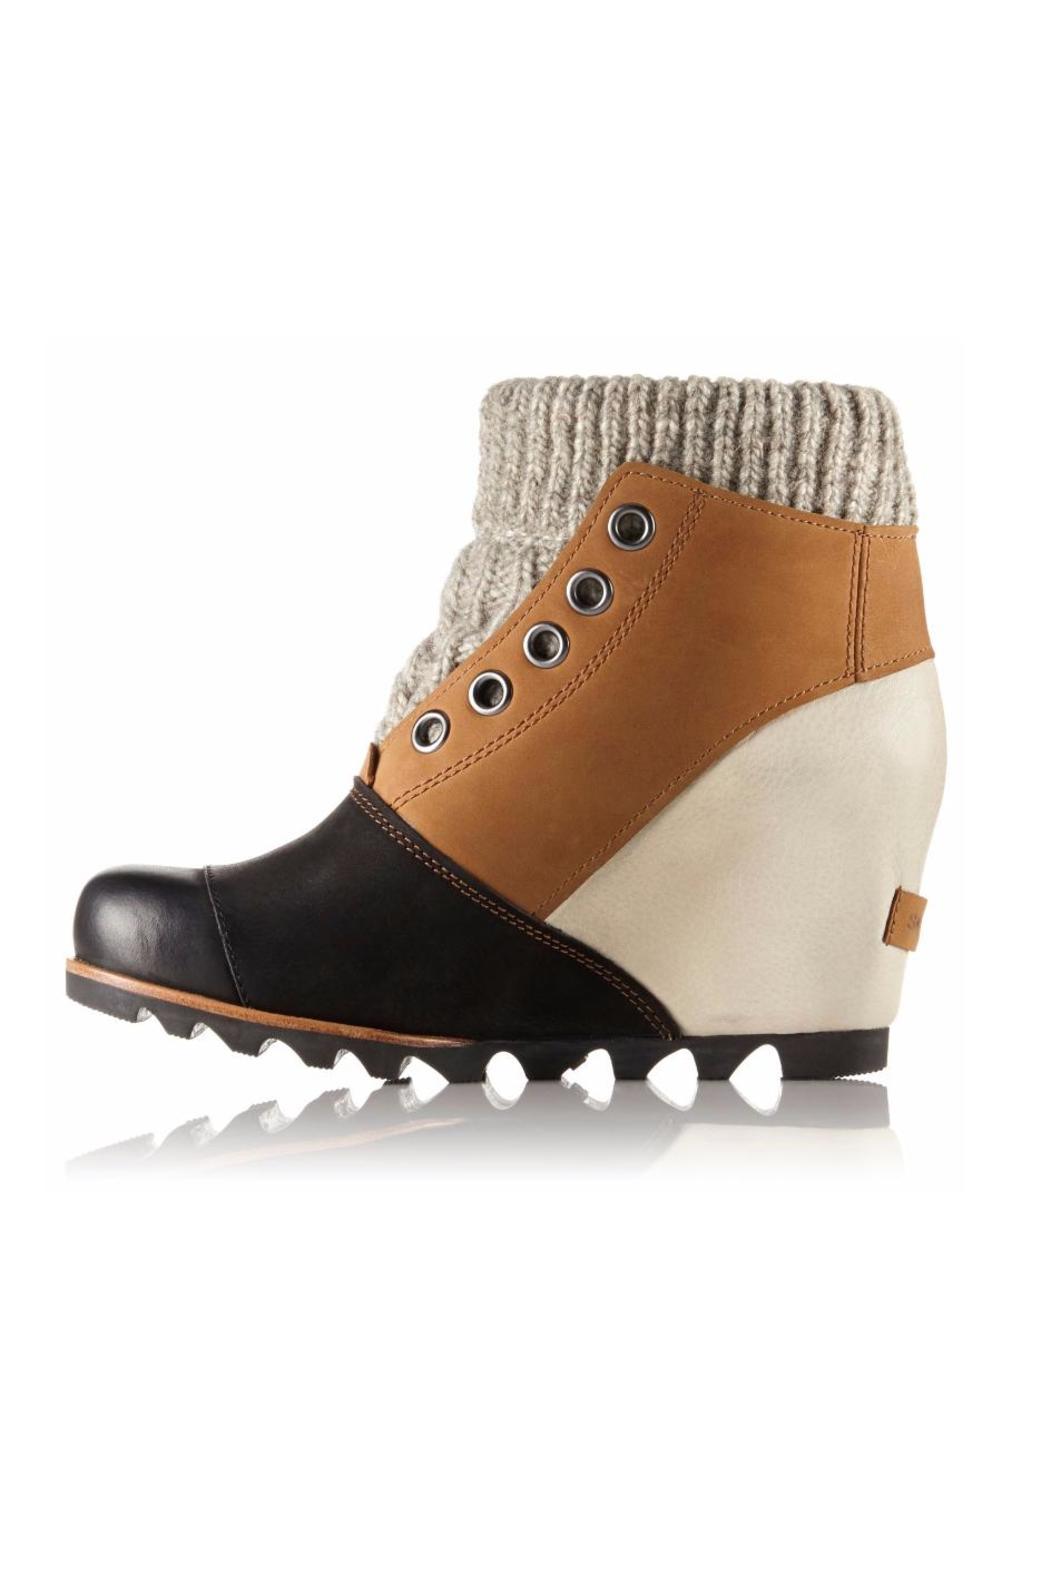 b7857fb88db Sorel Joanie Sweater Boot from Edmonton by Modern Sole — Shoptiques